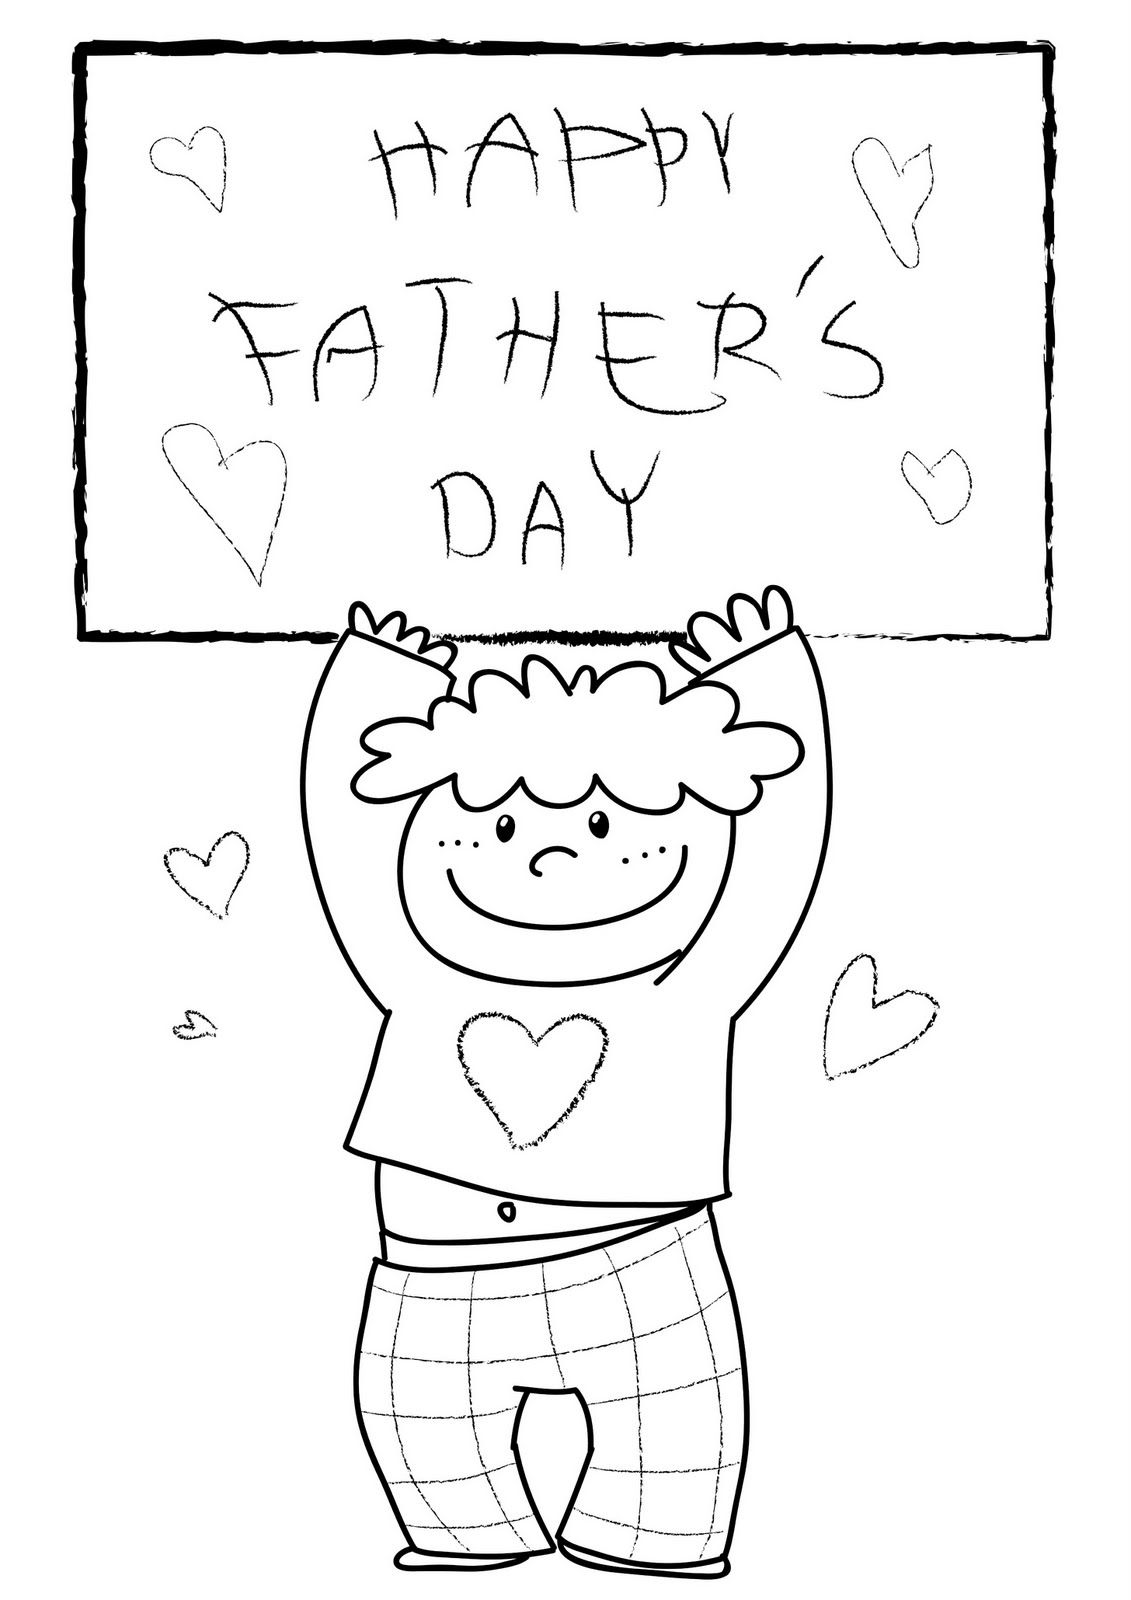 Happy Fathers Day Coloring Pages Check Out Free Printable Happy Fathers Day Dad Coloring Pages For